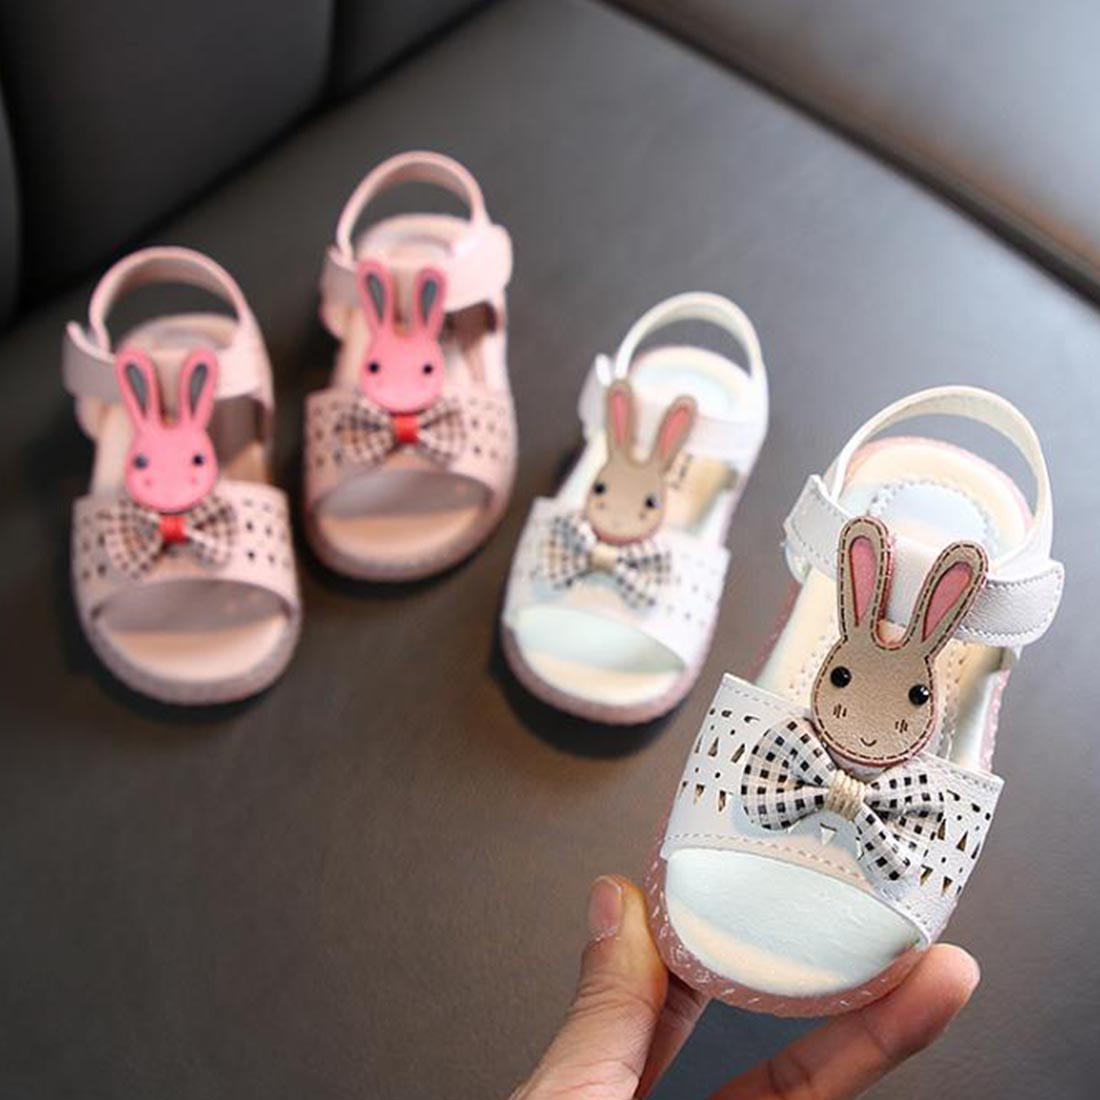 Kids Sandals Girls Open Toe Cartoon Bunny Princess Shoes Children's Non-slip Baby Toddler Shoes Fashionable